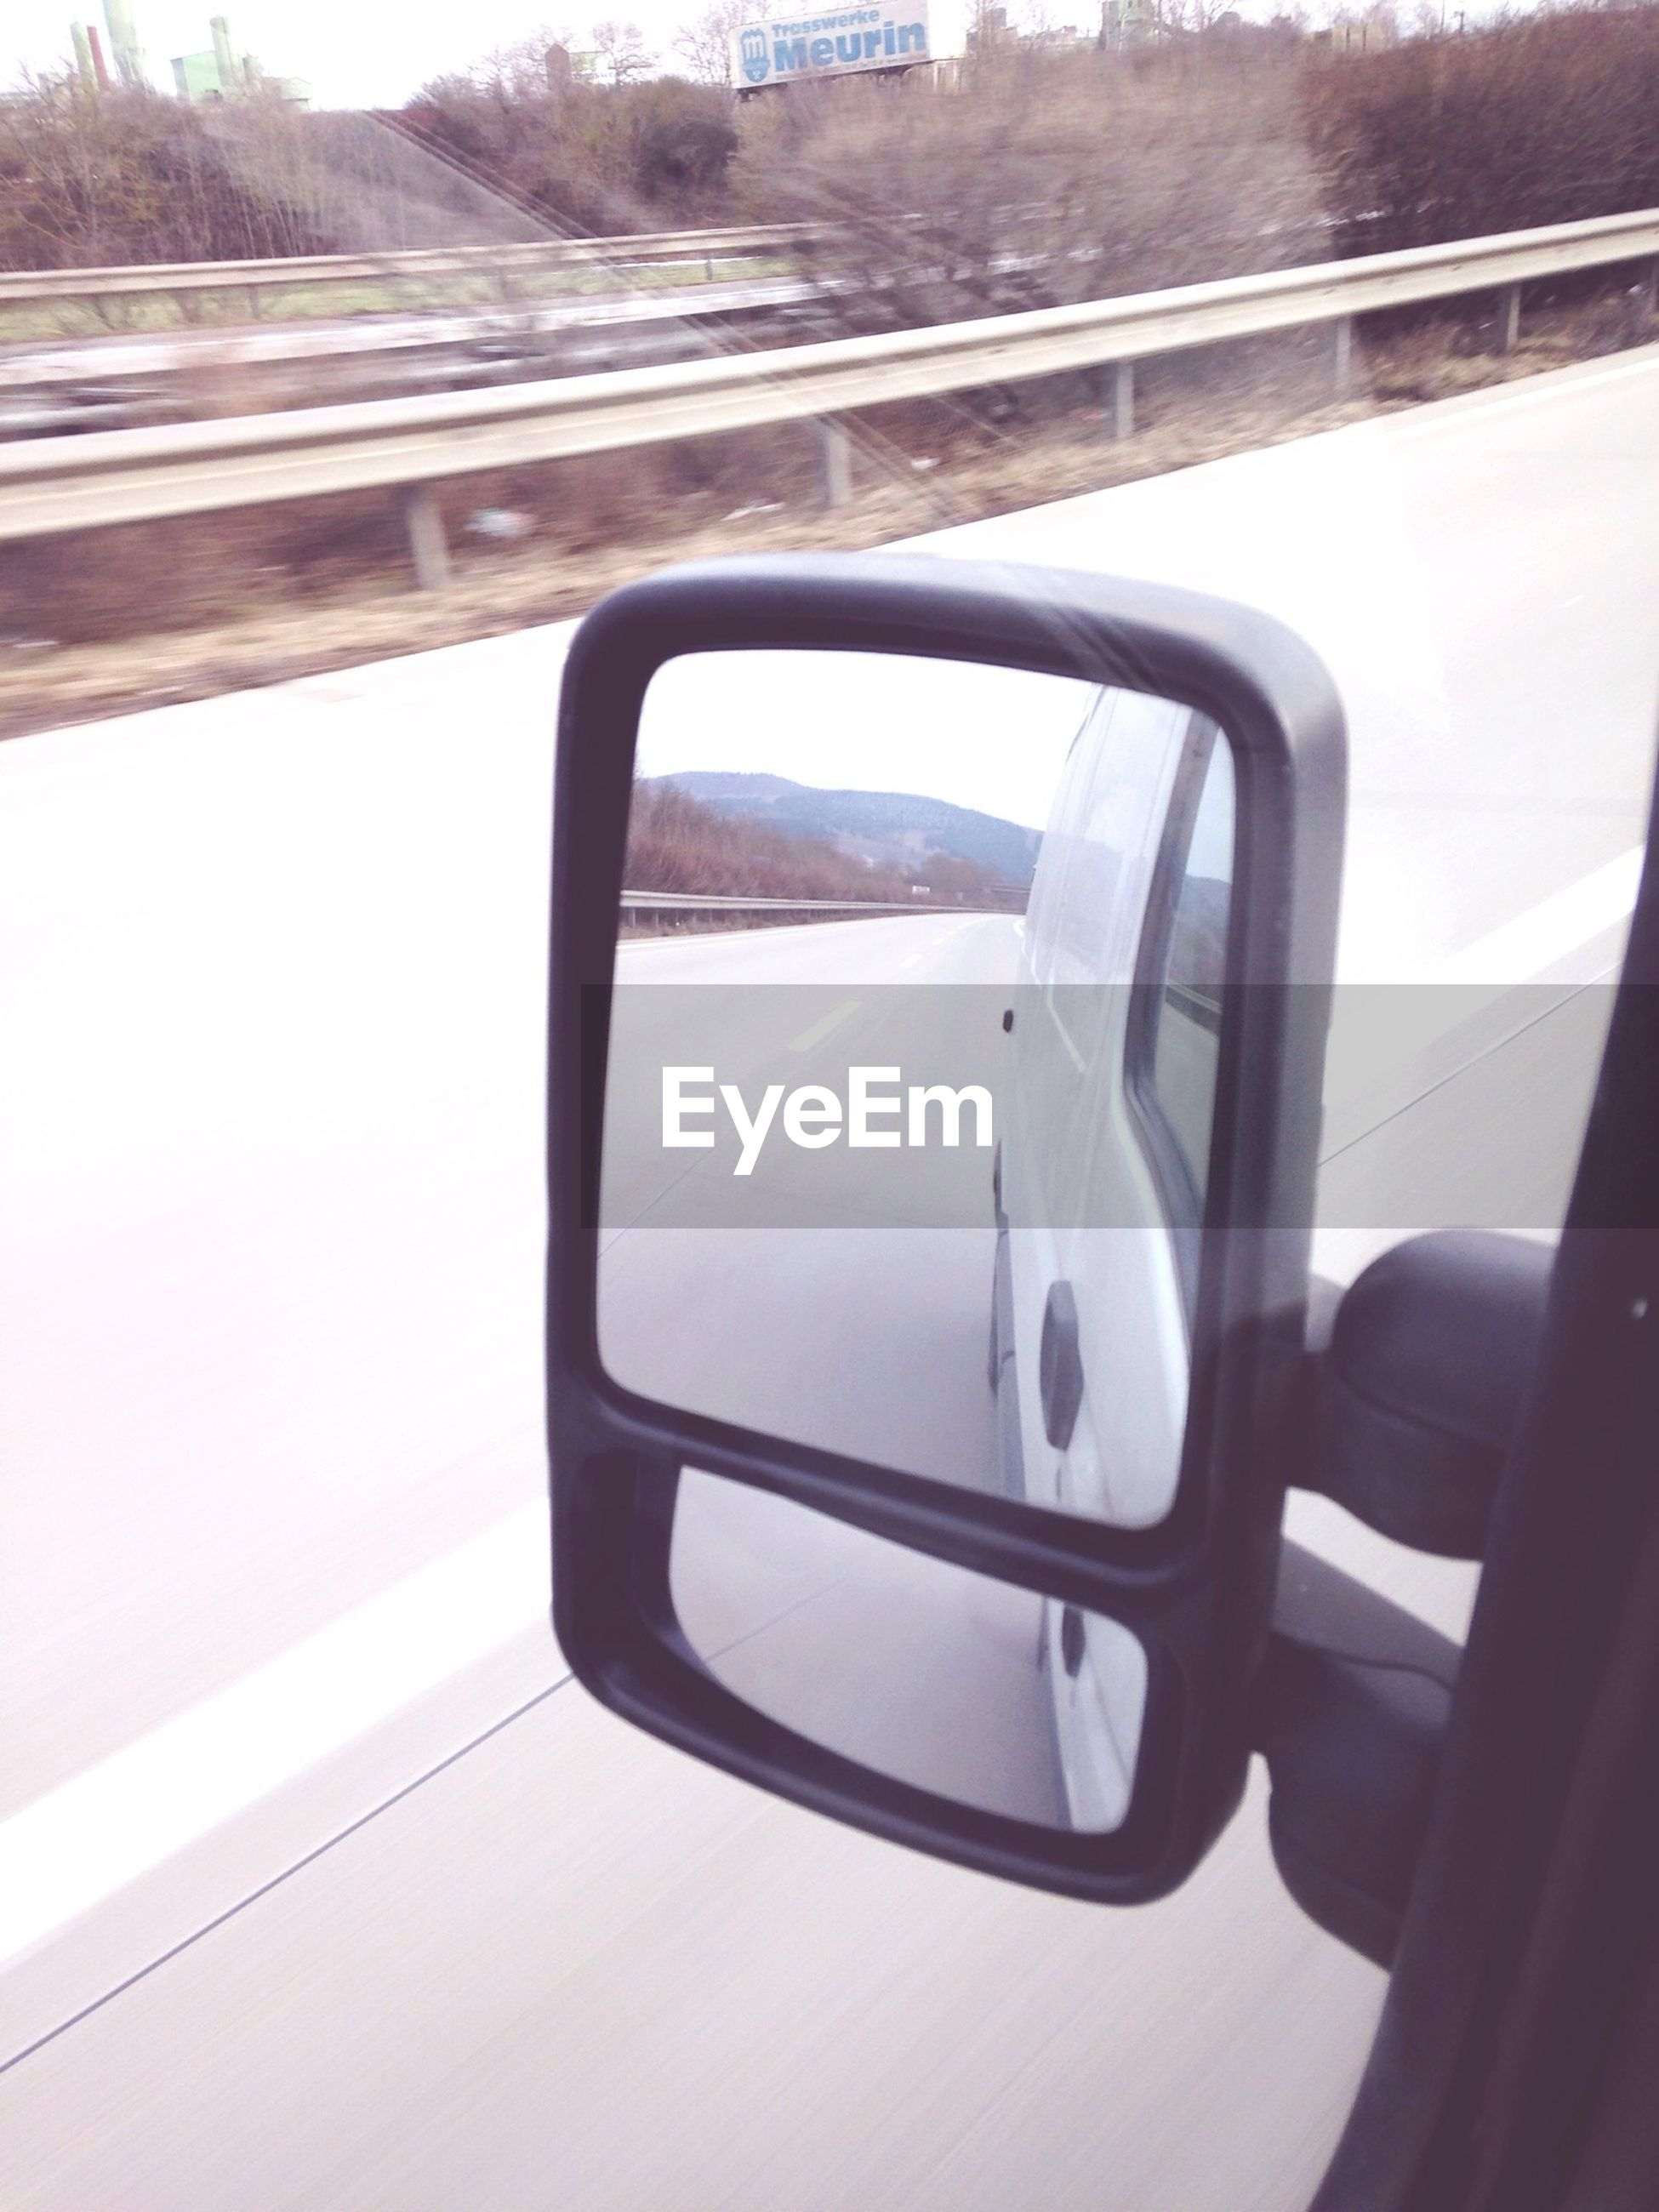 transportation, mode of transport, land vehicle, vehicle interior, car, travel, side-view mirror, public transportation, reflection, glass - material, car interior, journey, transparent, train - vehicle, on the move, window, part of, windshield, one person, road